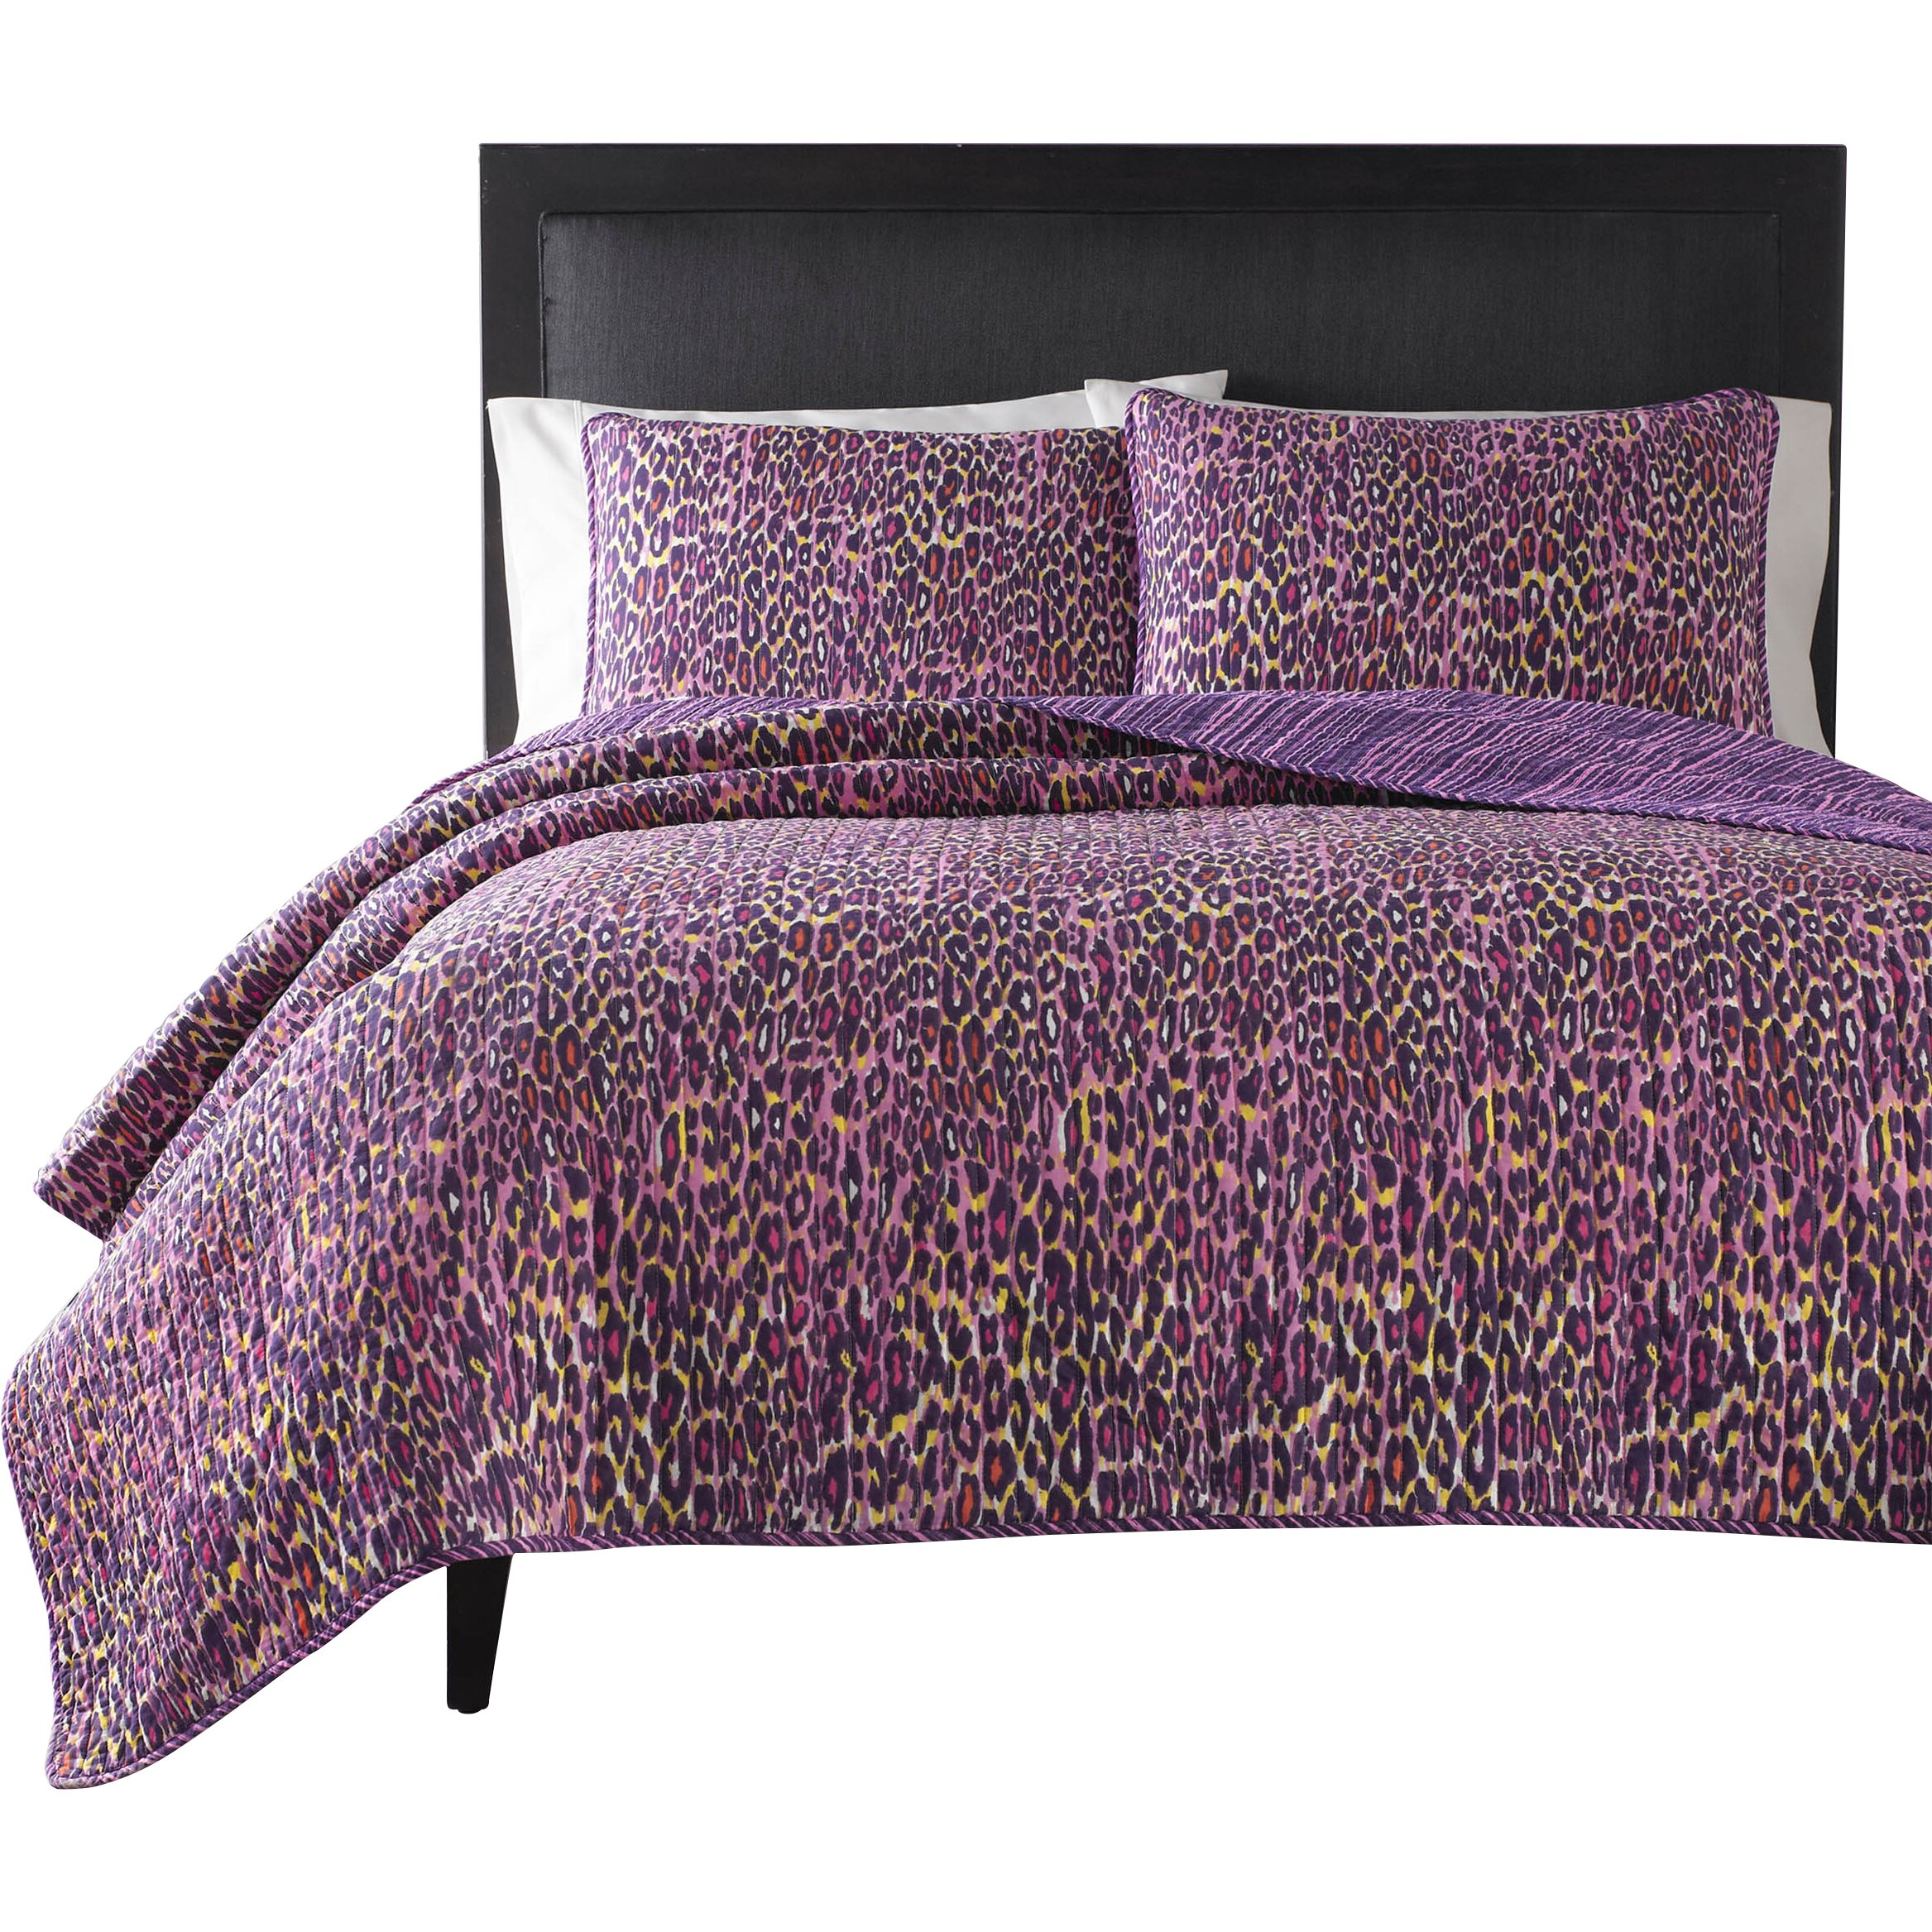 Betsey Johnson Leopard Quilt Set Reviews Wayfair